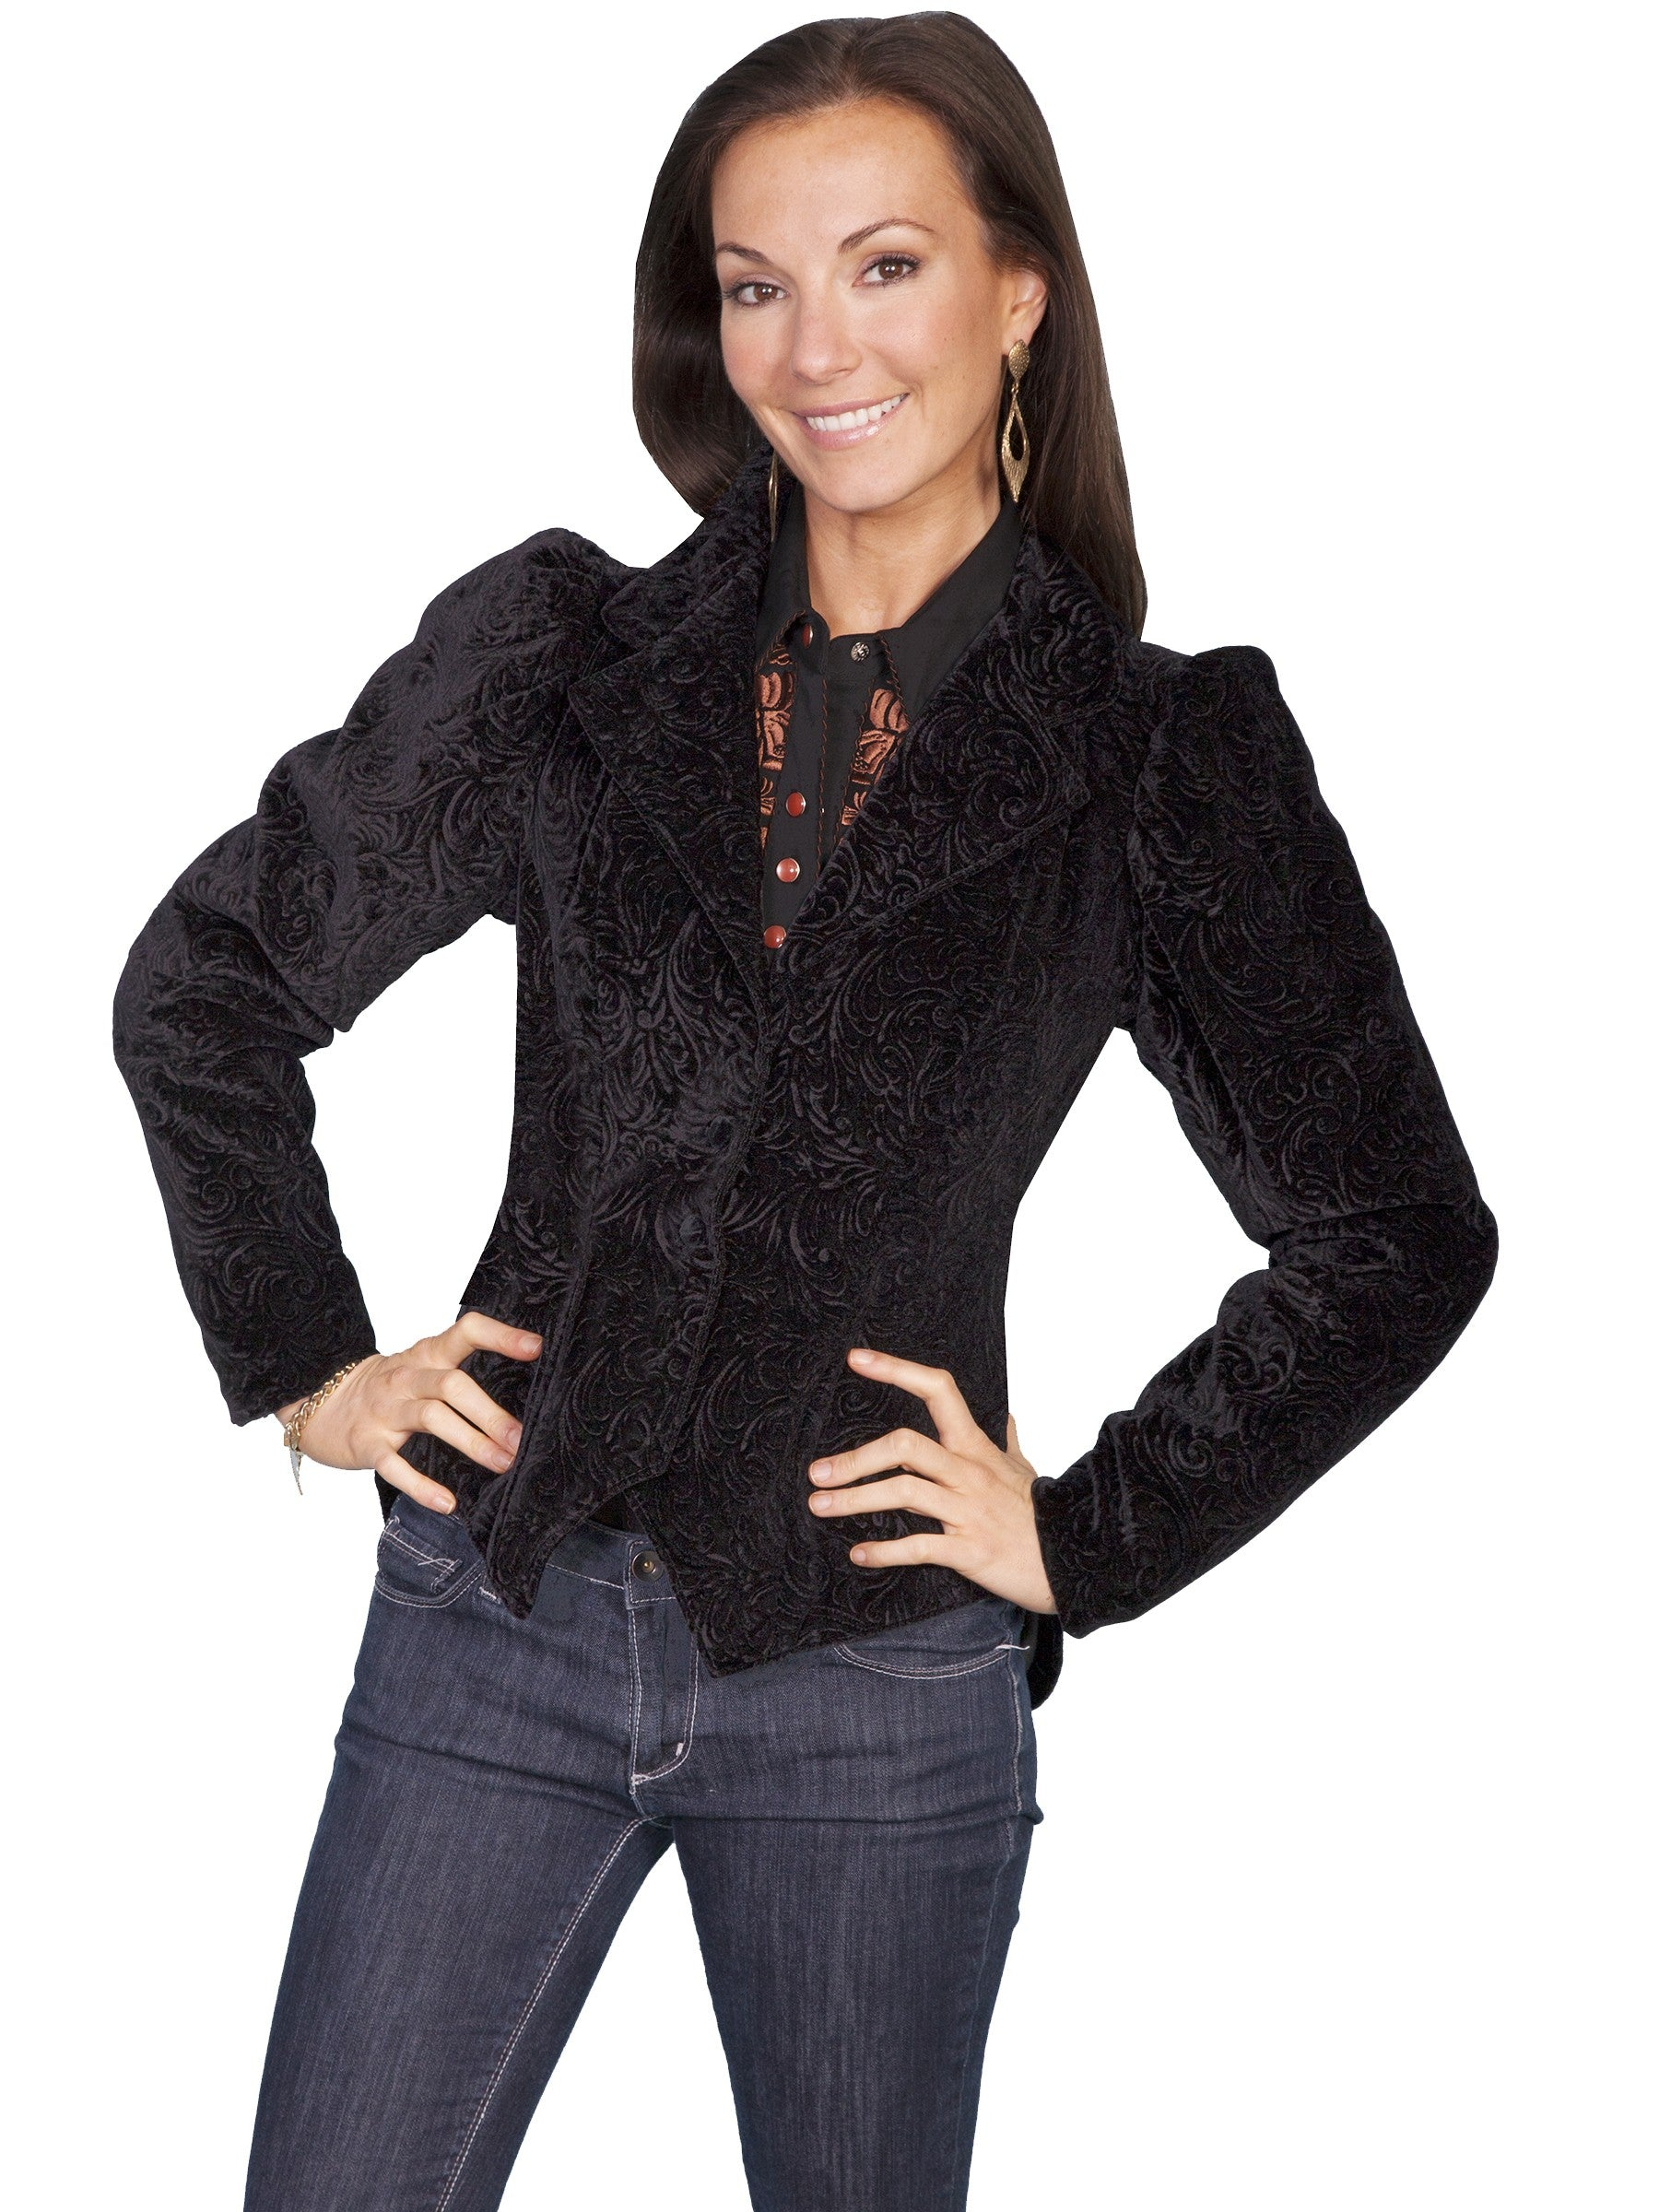 Victorian Clothing, Costumes & 1800s Fashion Western Style Embossed Velvet Coat in Black $224.00 AT vintagedancer.com